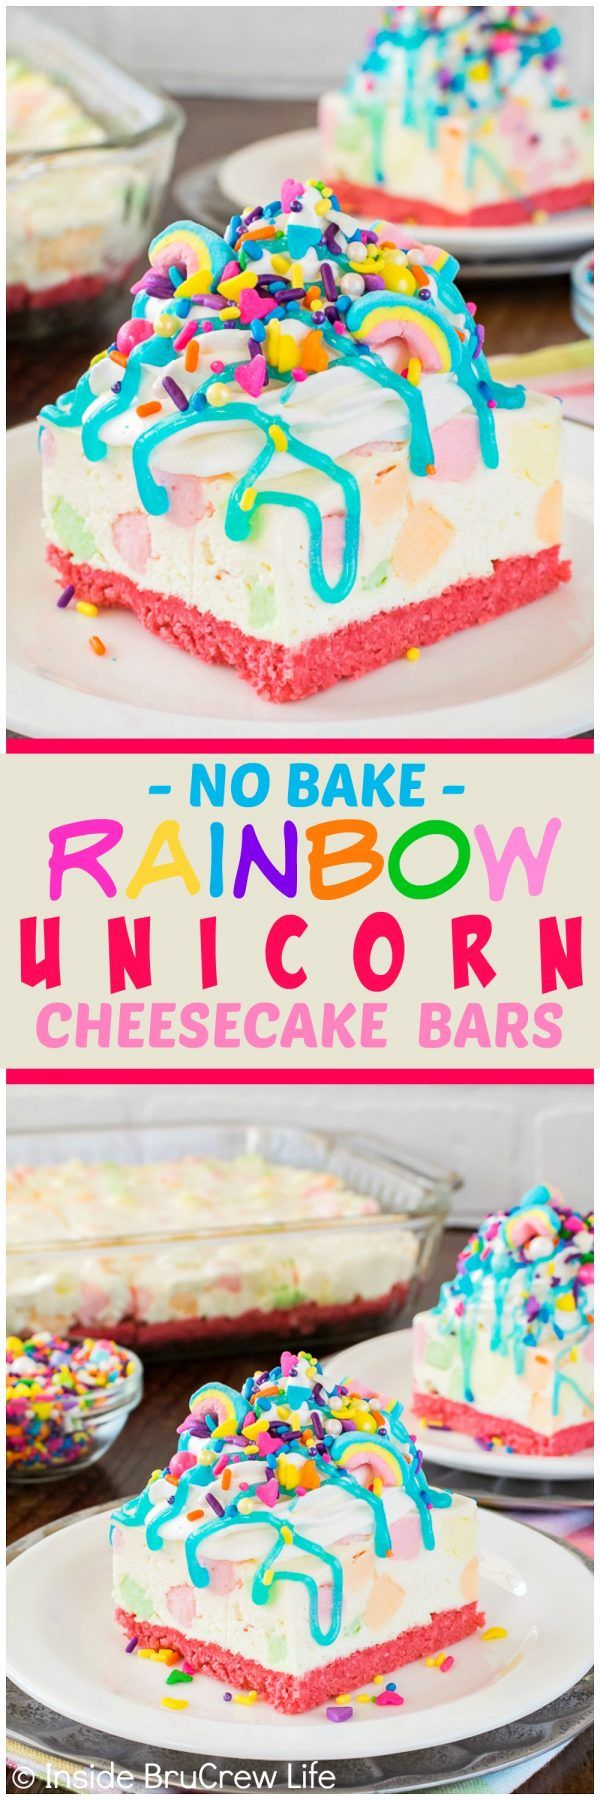 No Bake Rainbow Unicorn Cheesecake Bars a pink cookie crust lots